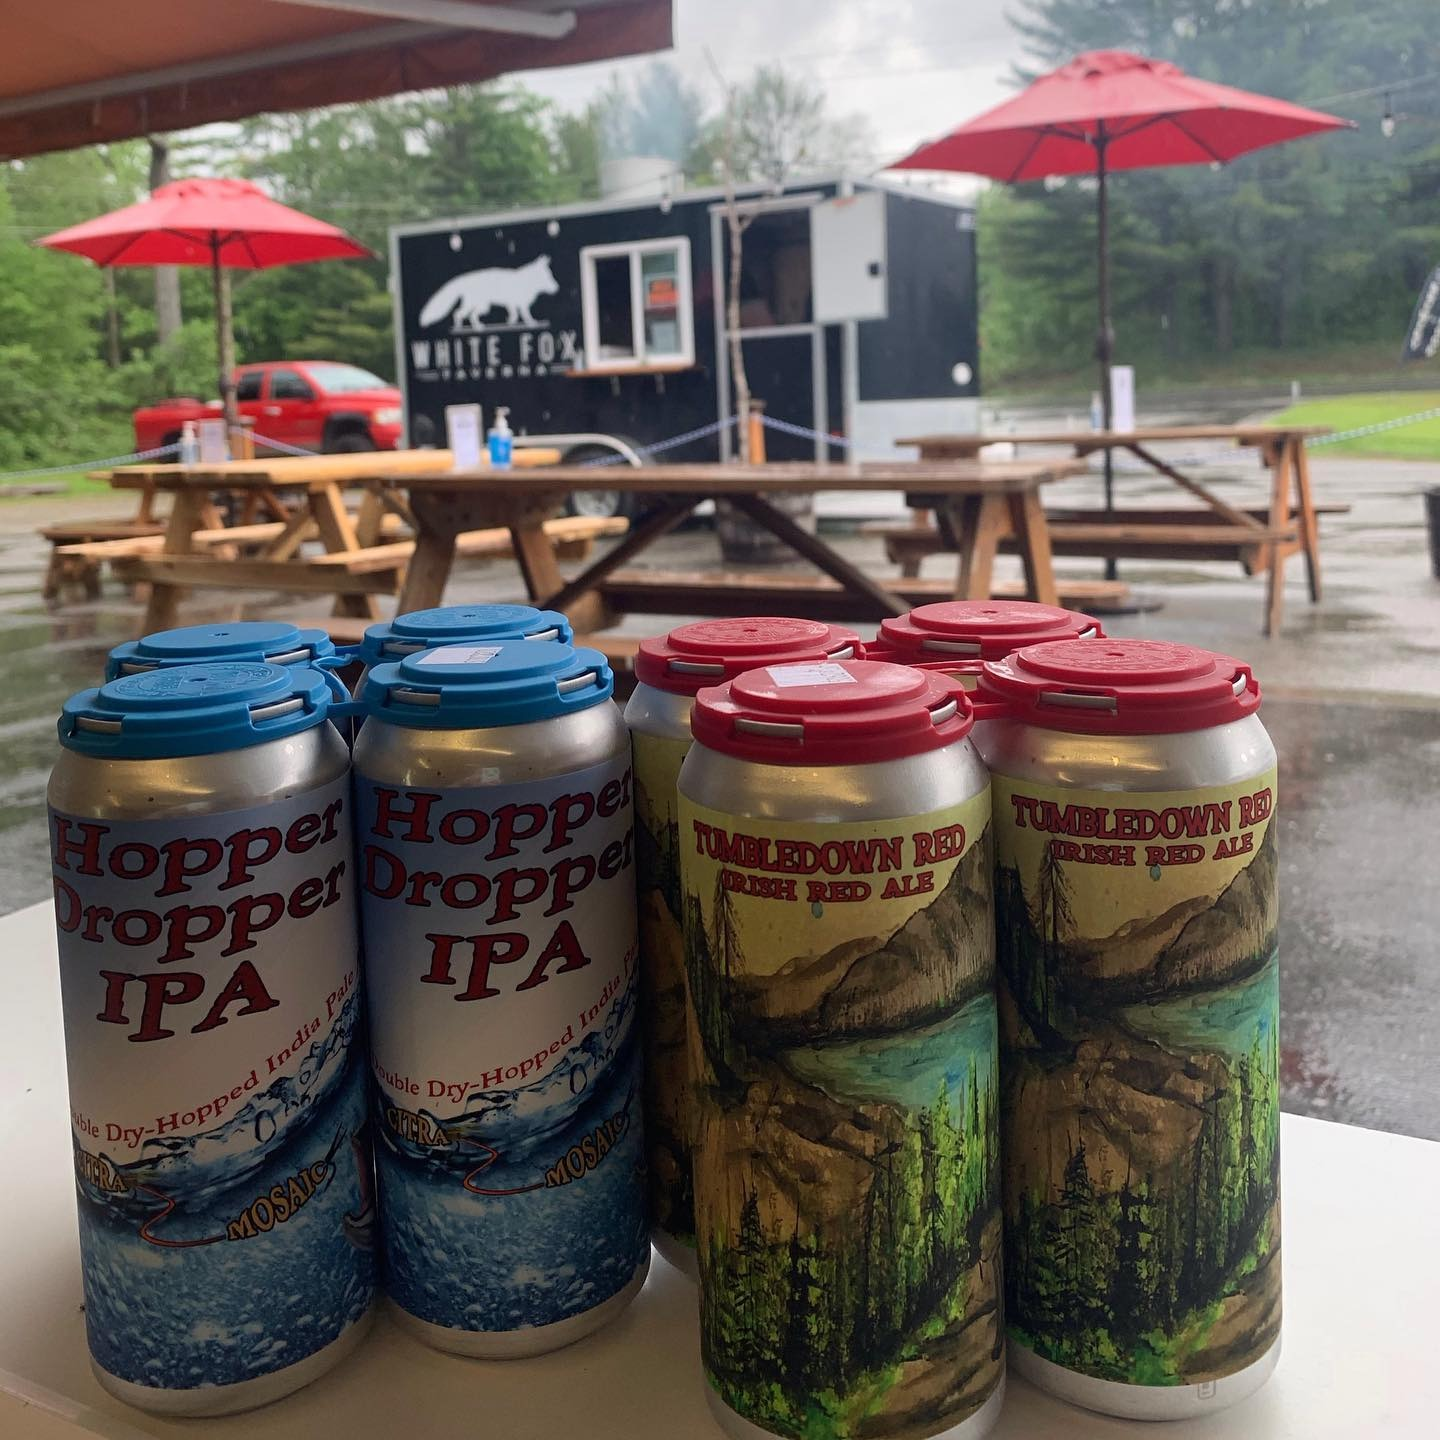 Two 4-packs of beer cans in front of a patio with wood picnic tables and a food truck called White Fox.